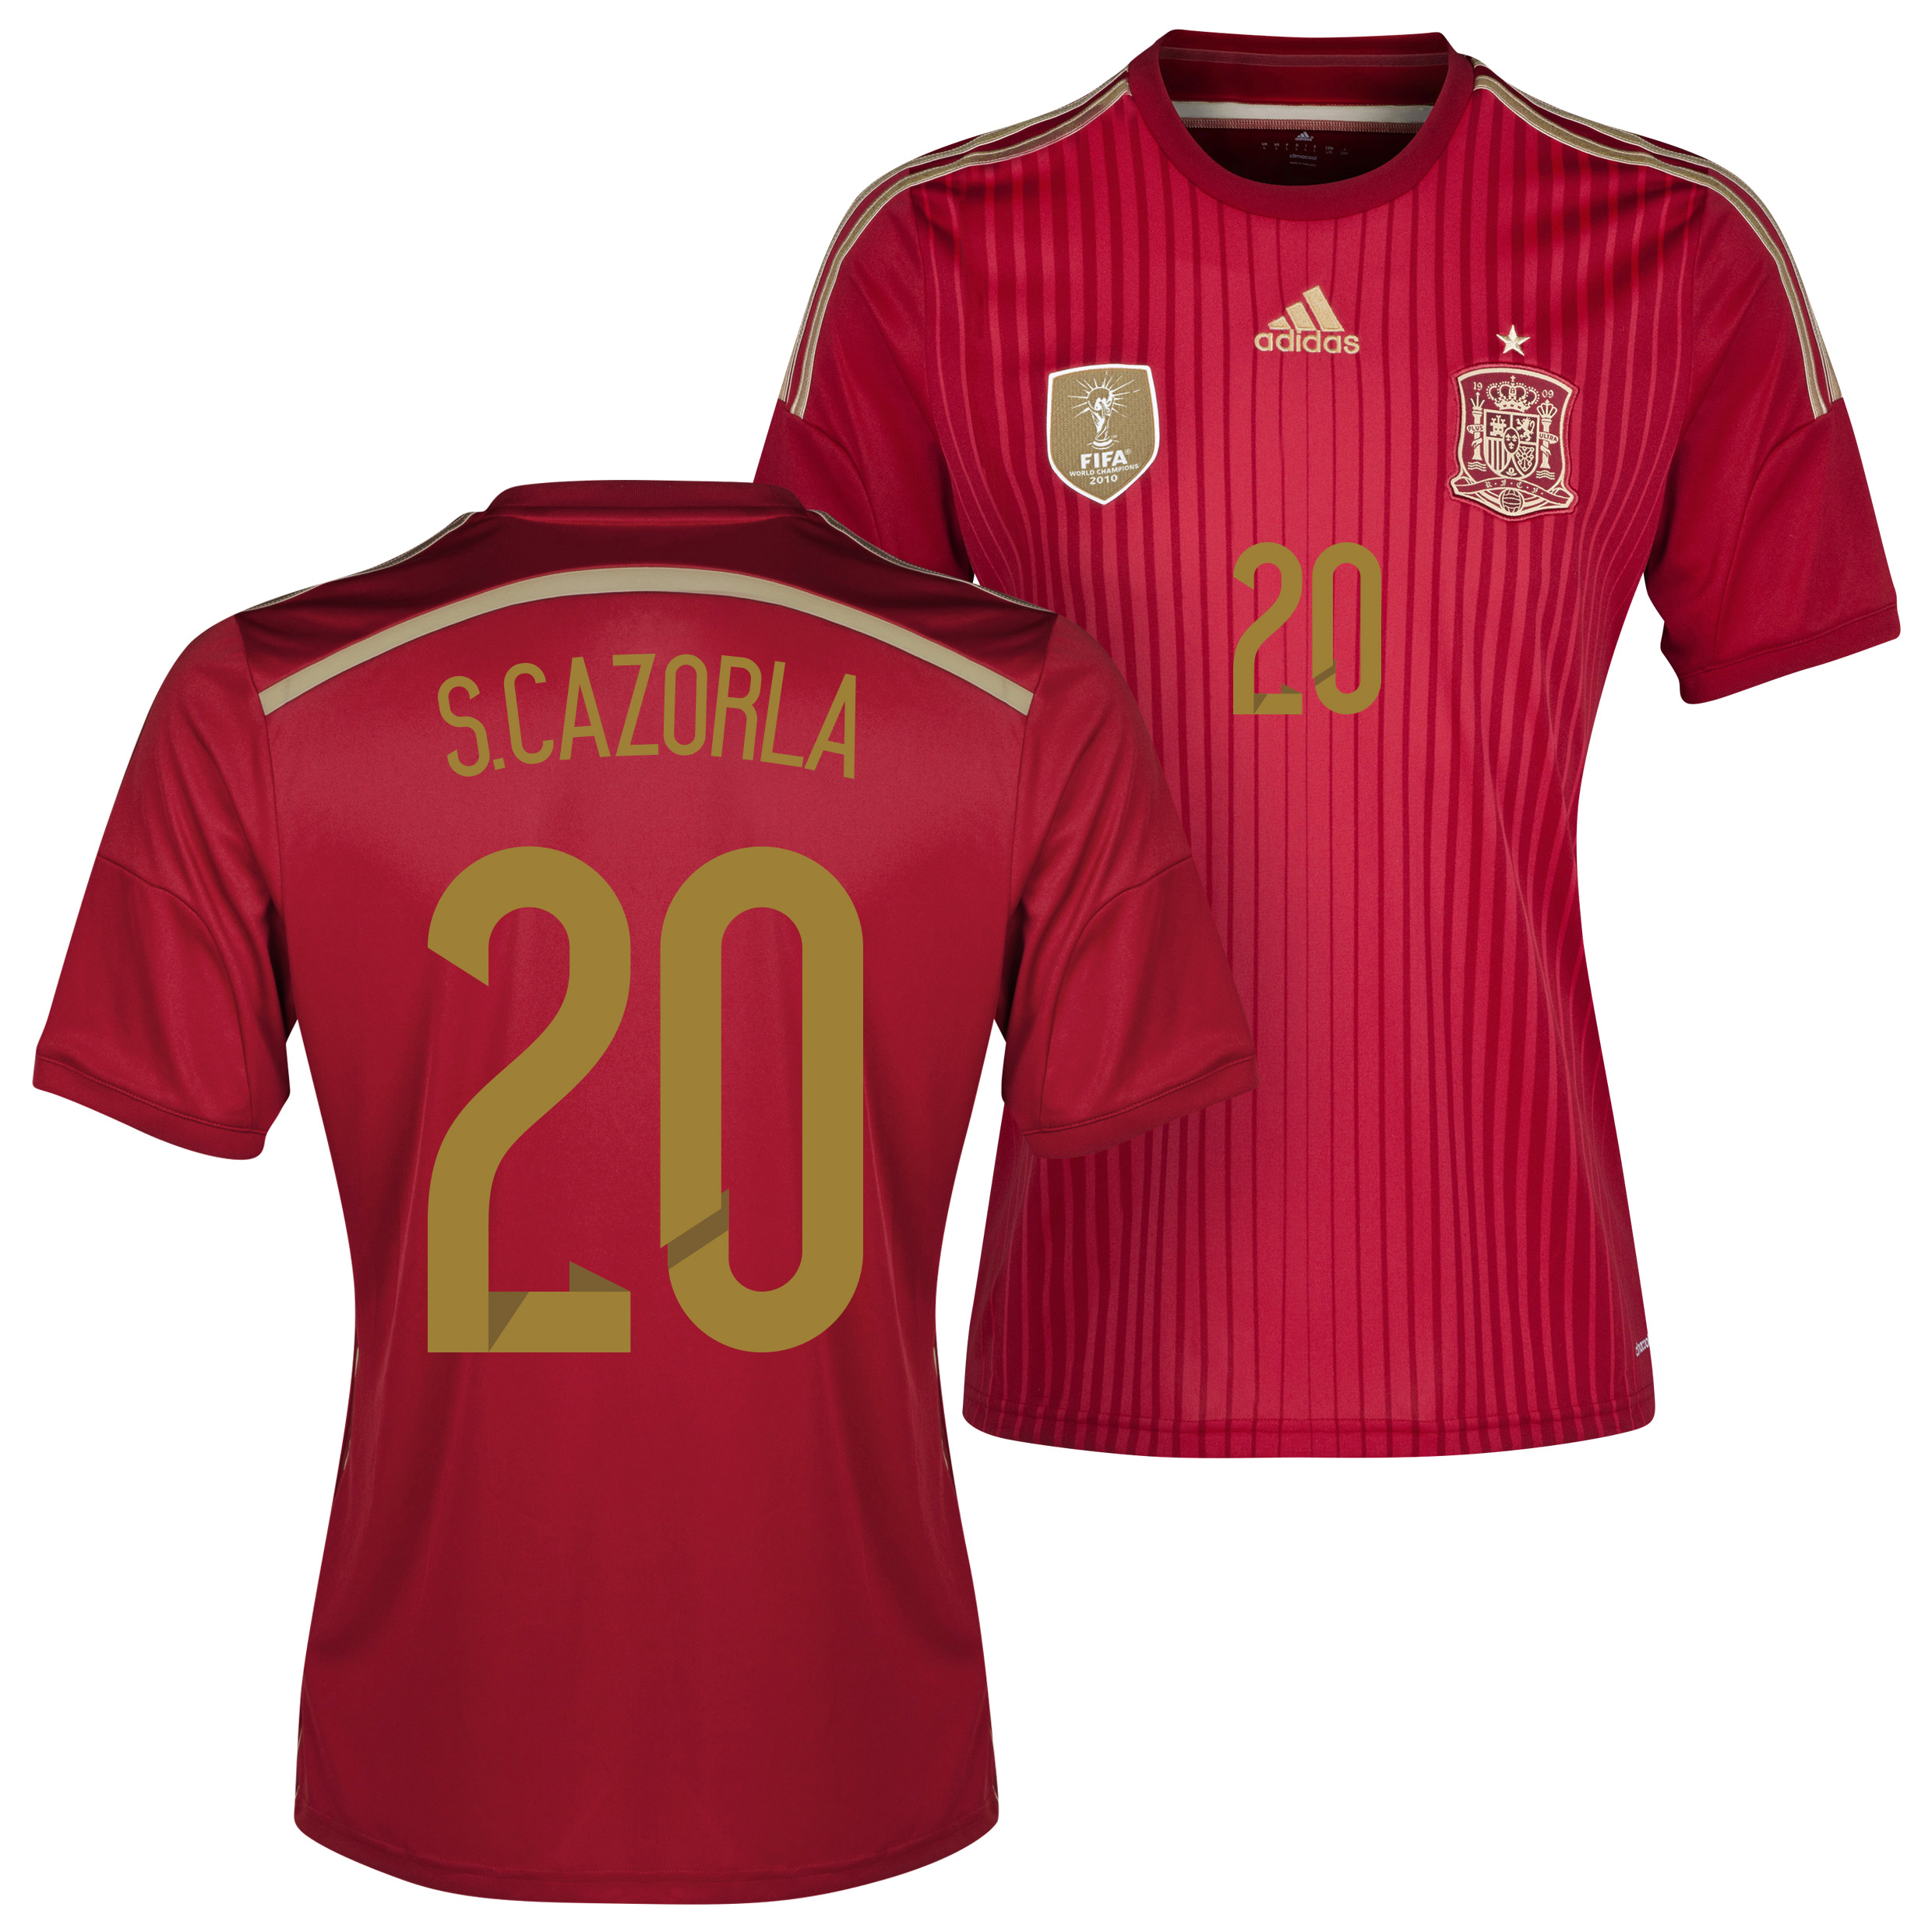 Spain Home Shirt 2013/15 - Kids with S. Cazorla 20 printing